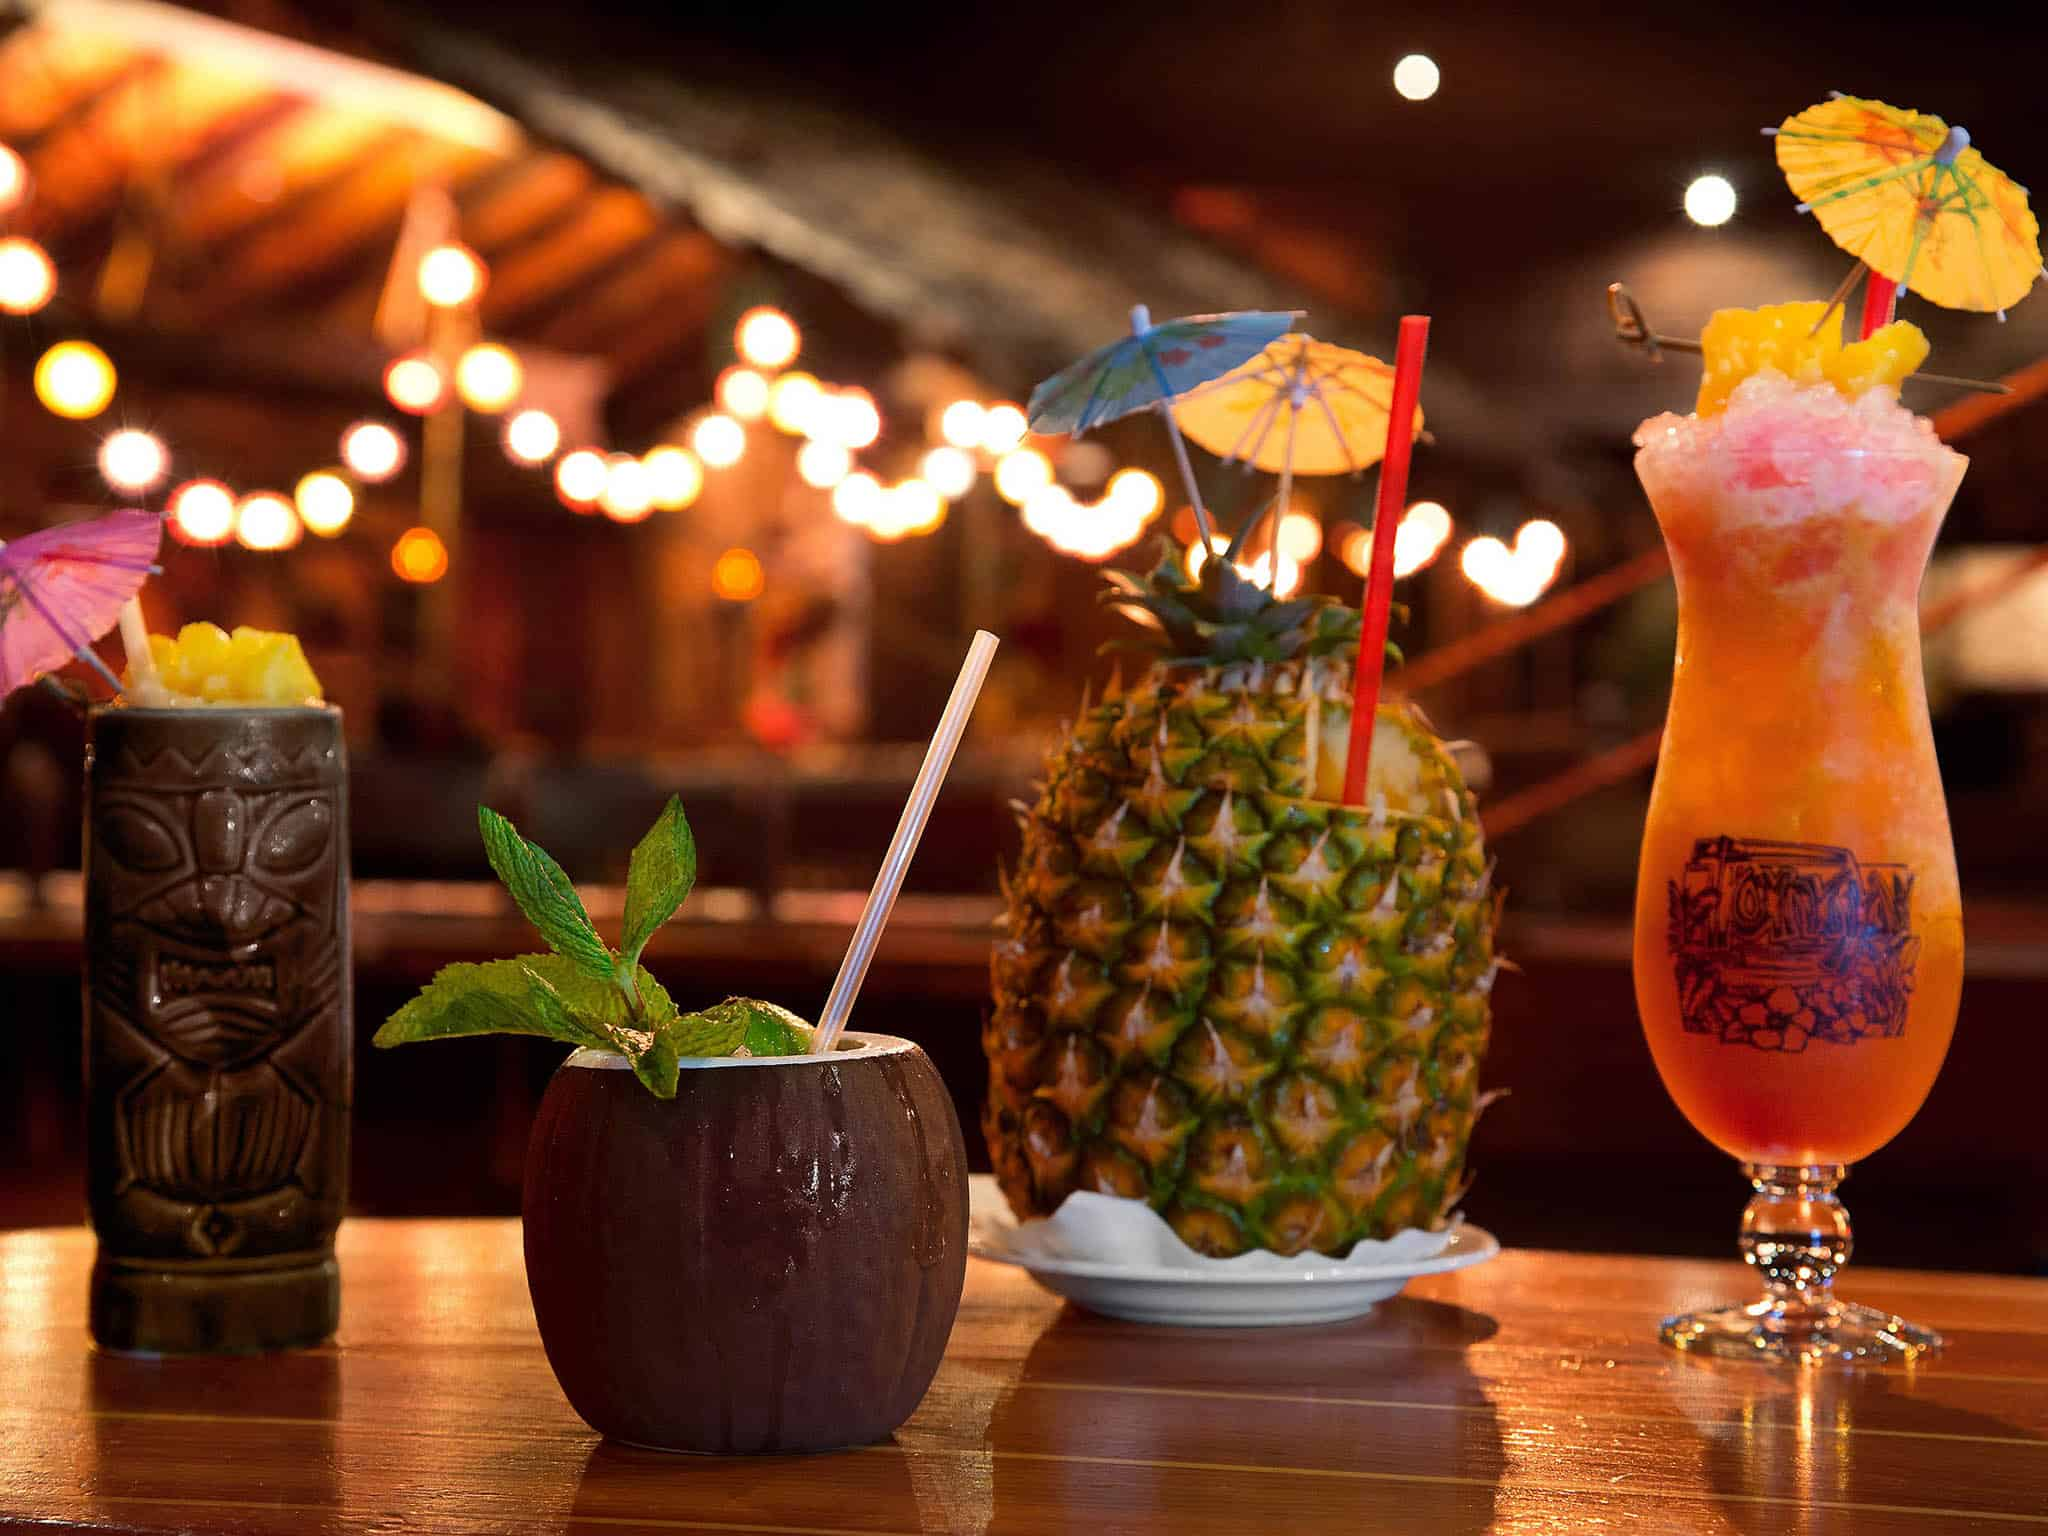 Fairmont San Francisco cocktails, one tiki, on coconut, one pineapple, one fruity drink